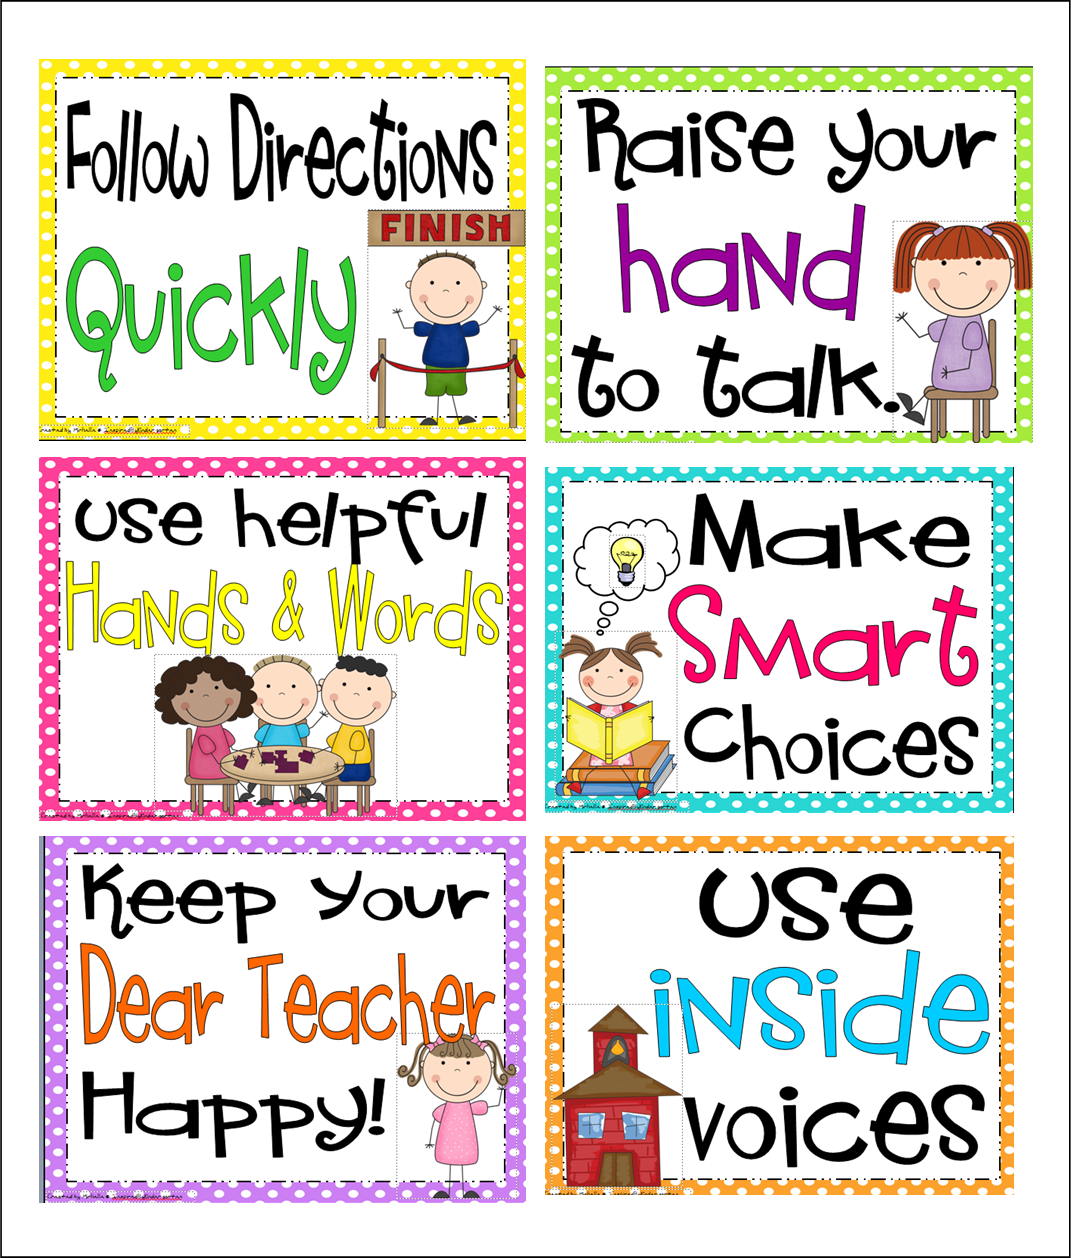 http://www.teacherspayteachers.com/Product/Our-6-Classroom-Rules-283736